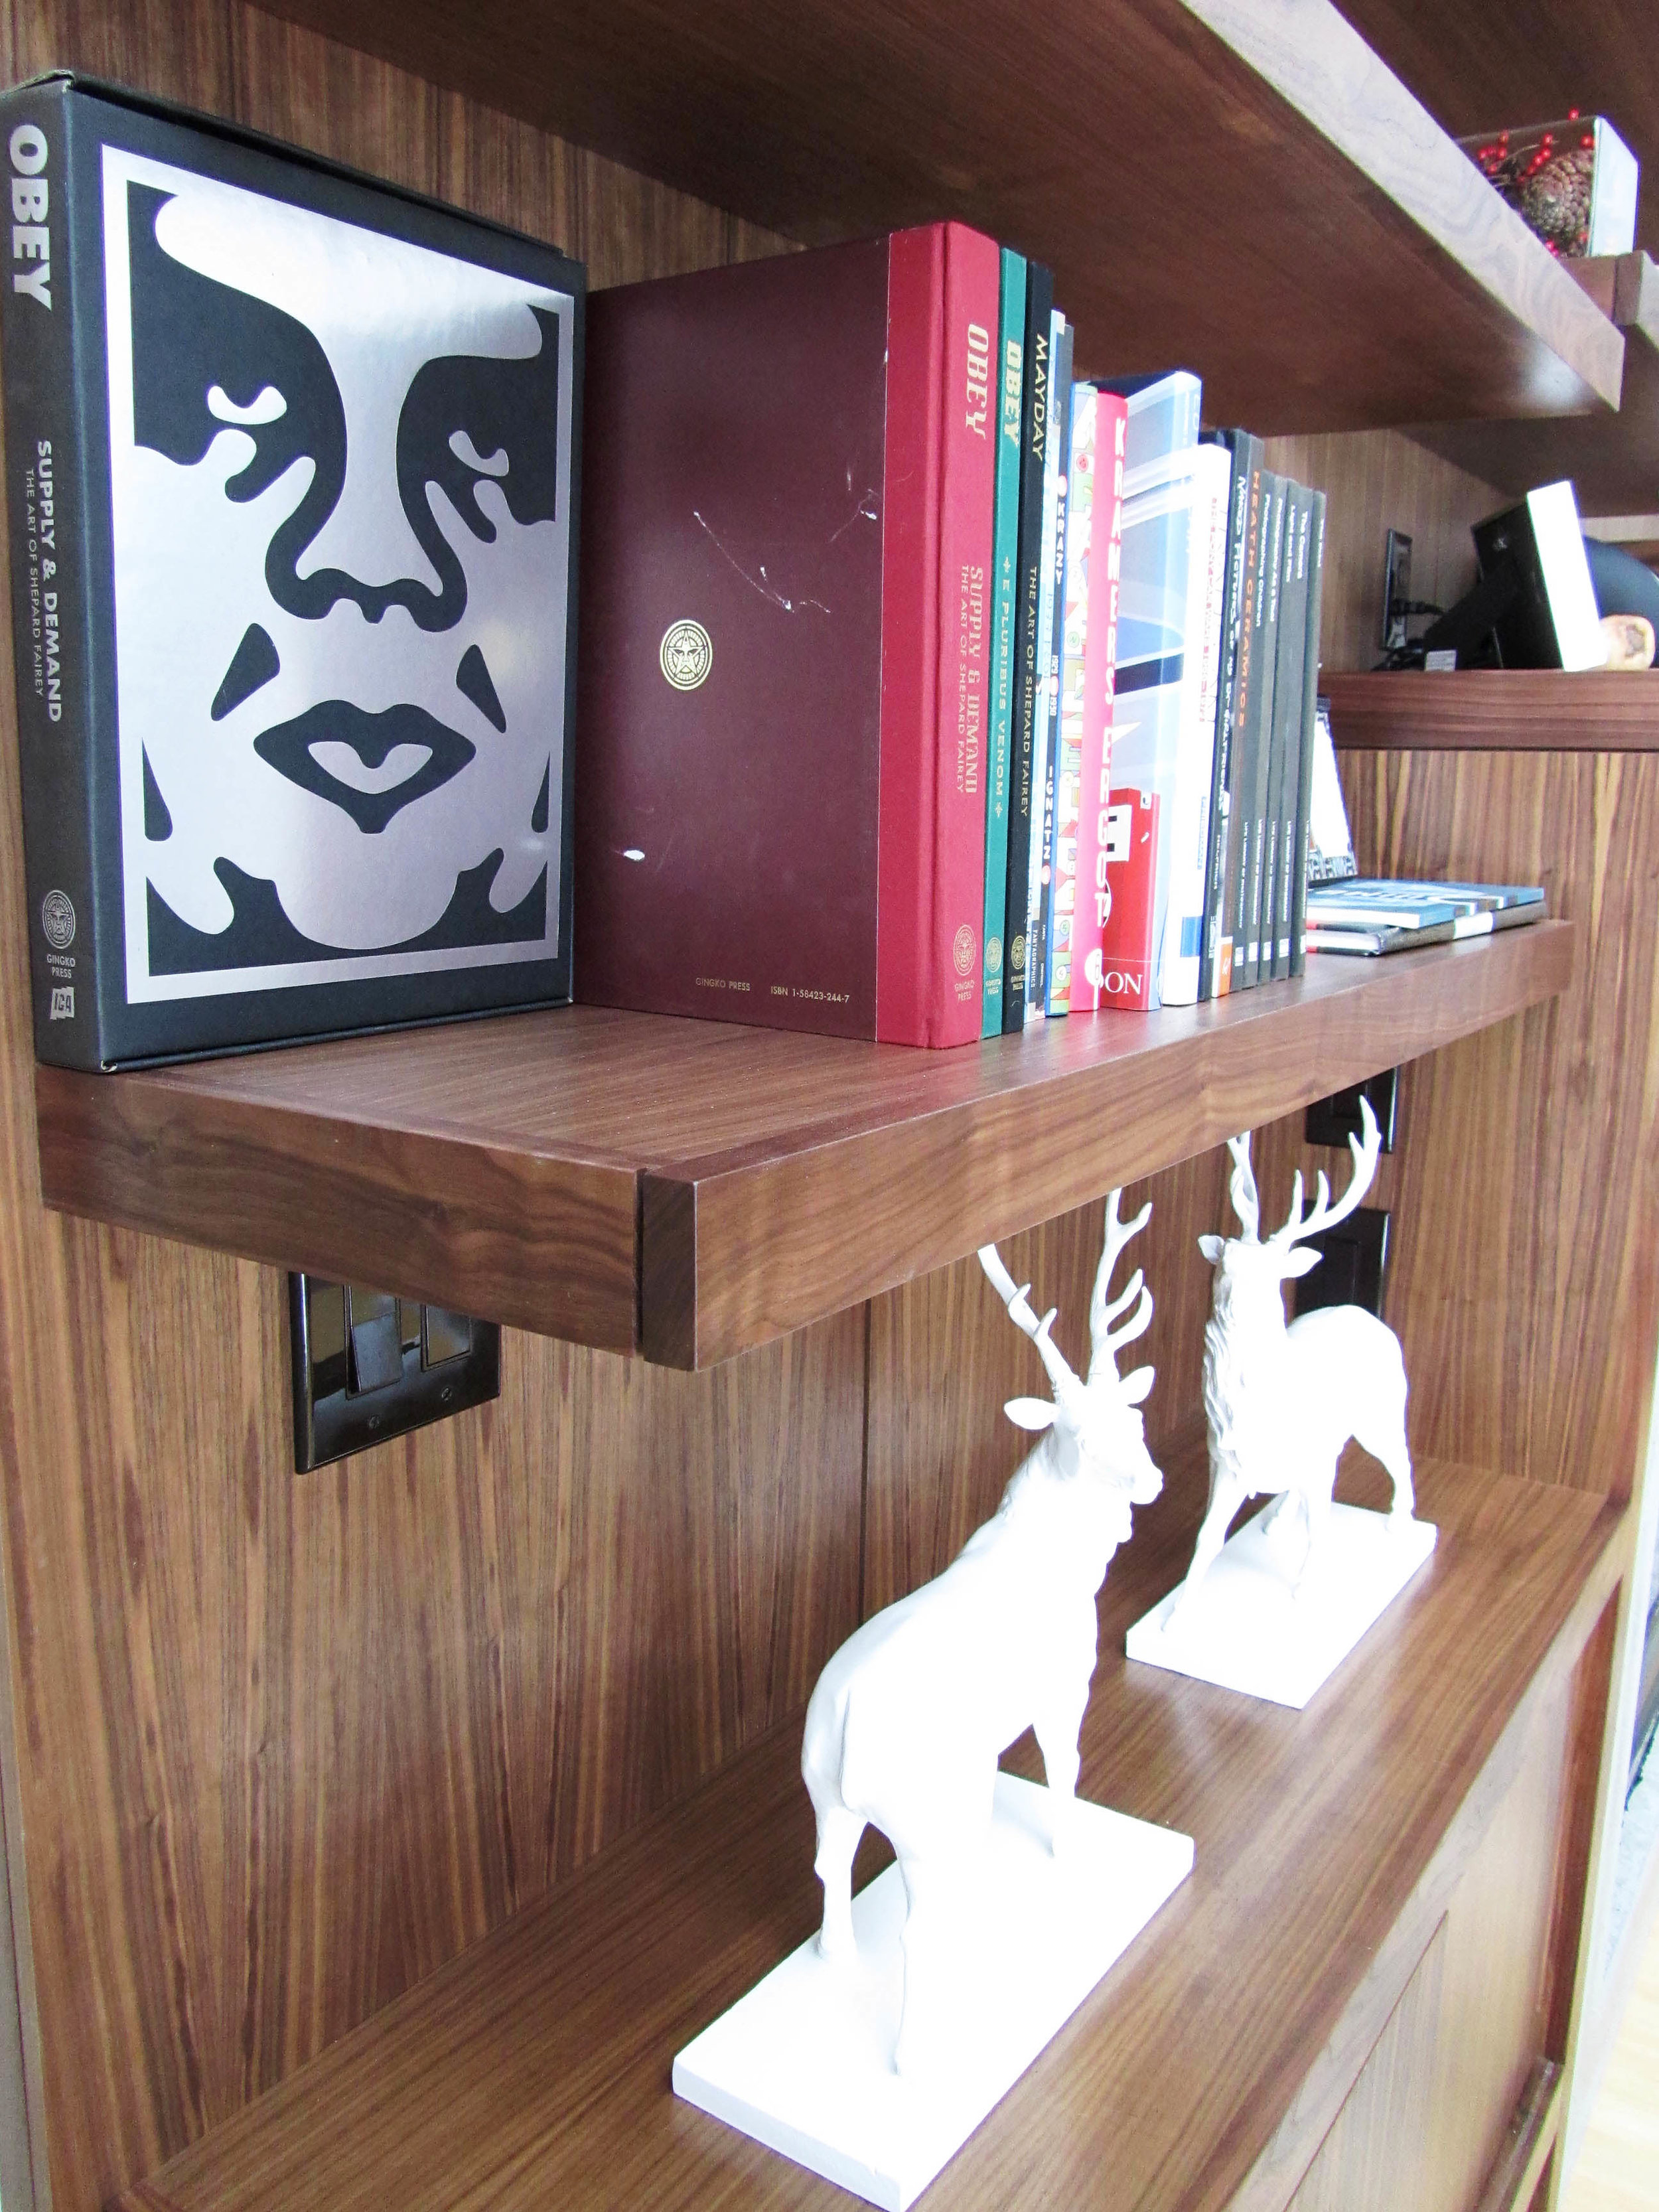 Honore-Cabinetry-custom-modern-walnut-wall-unit-shelves-cabinets-detail2.jpg